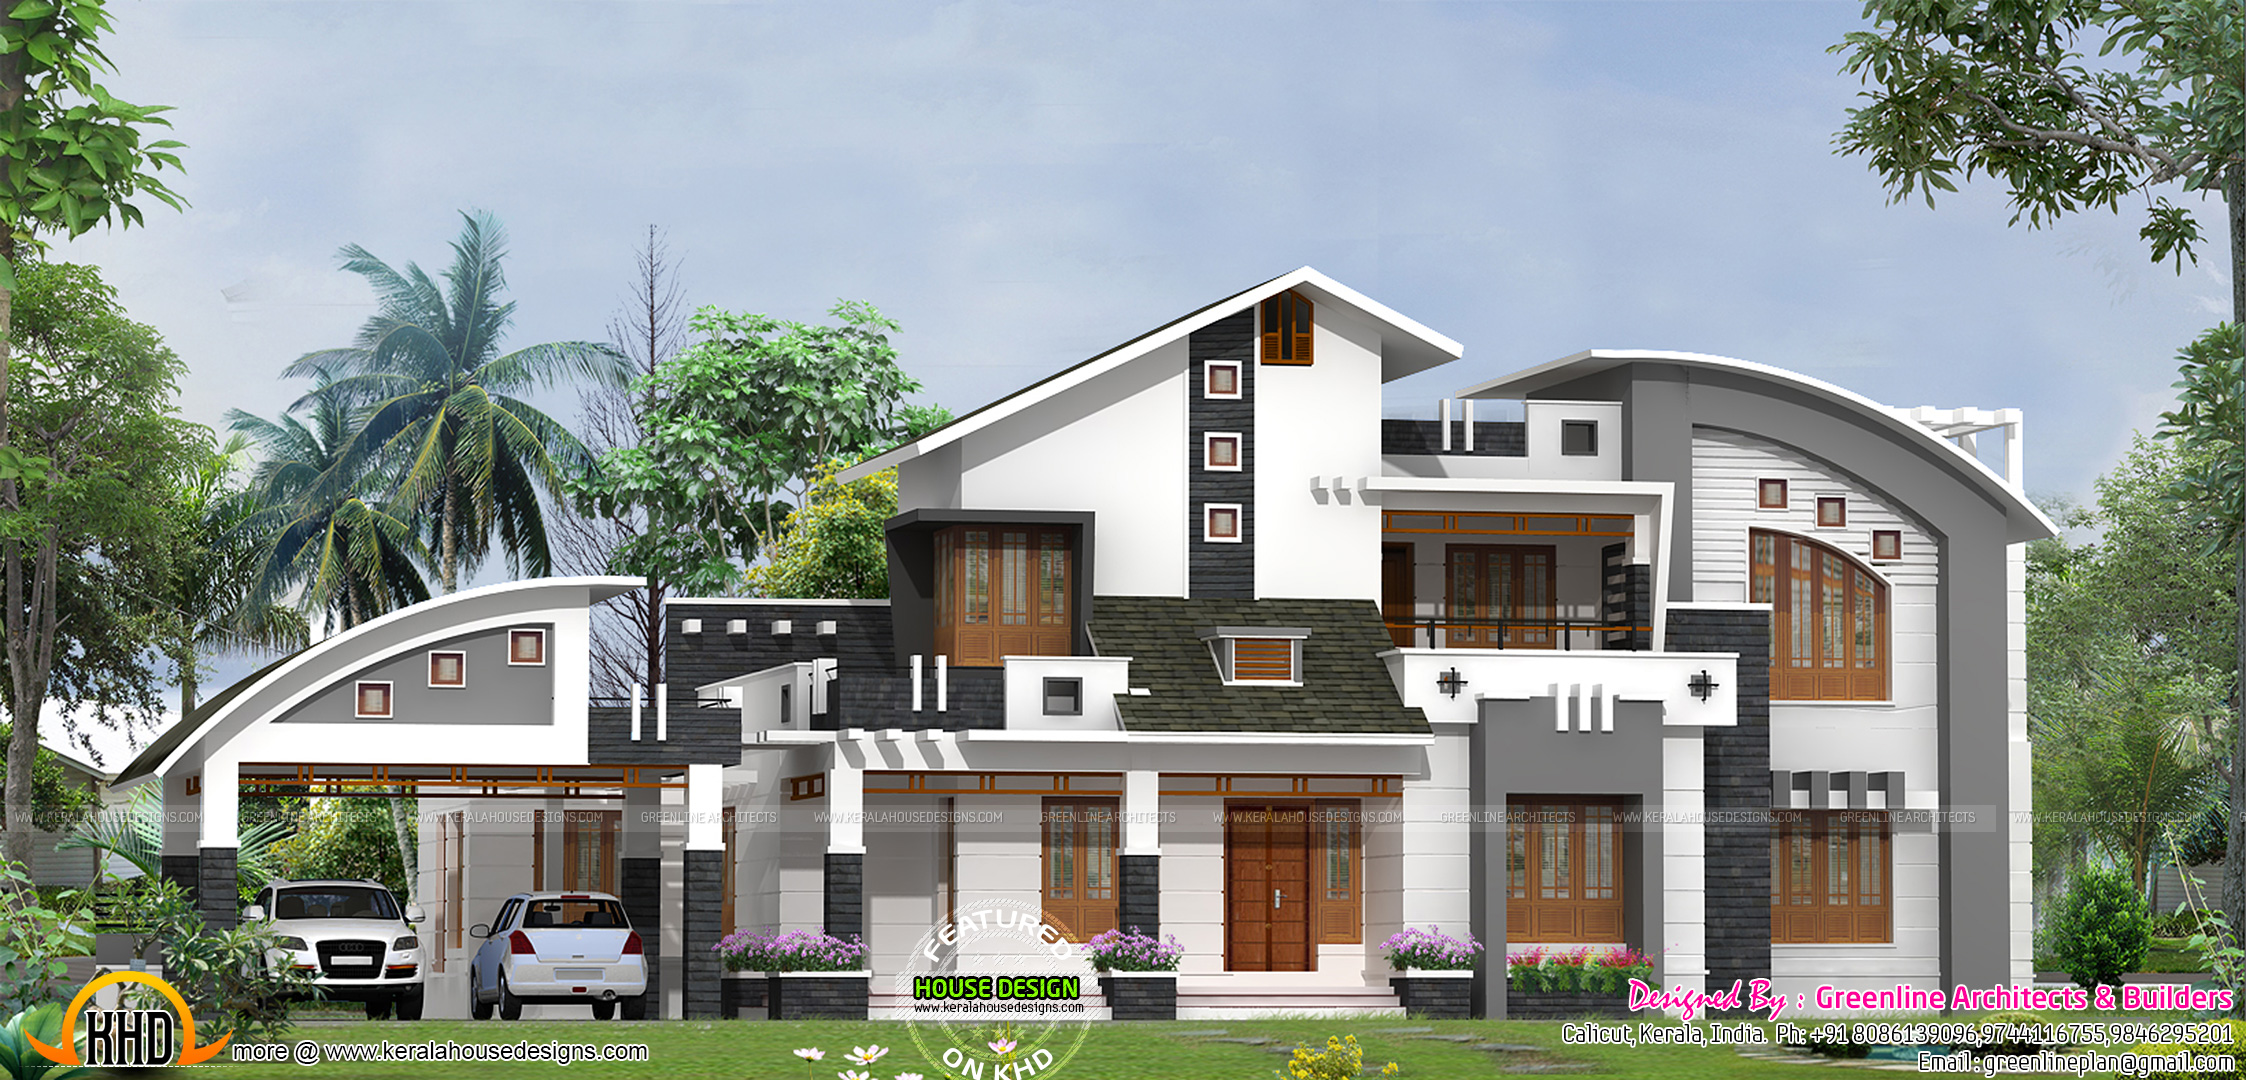 Contemporary mix home plan kerala home design and floor House plans from home builders